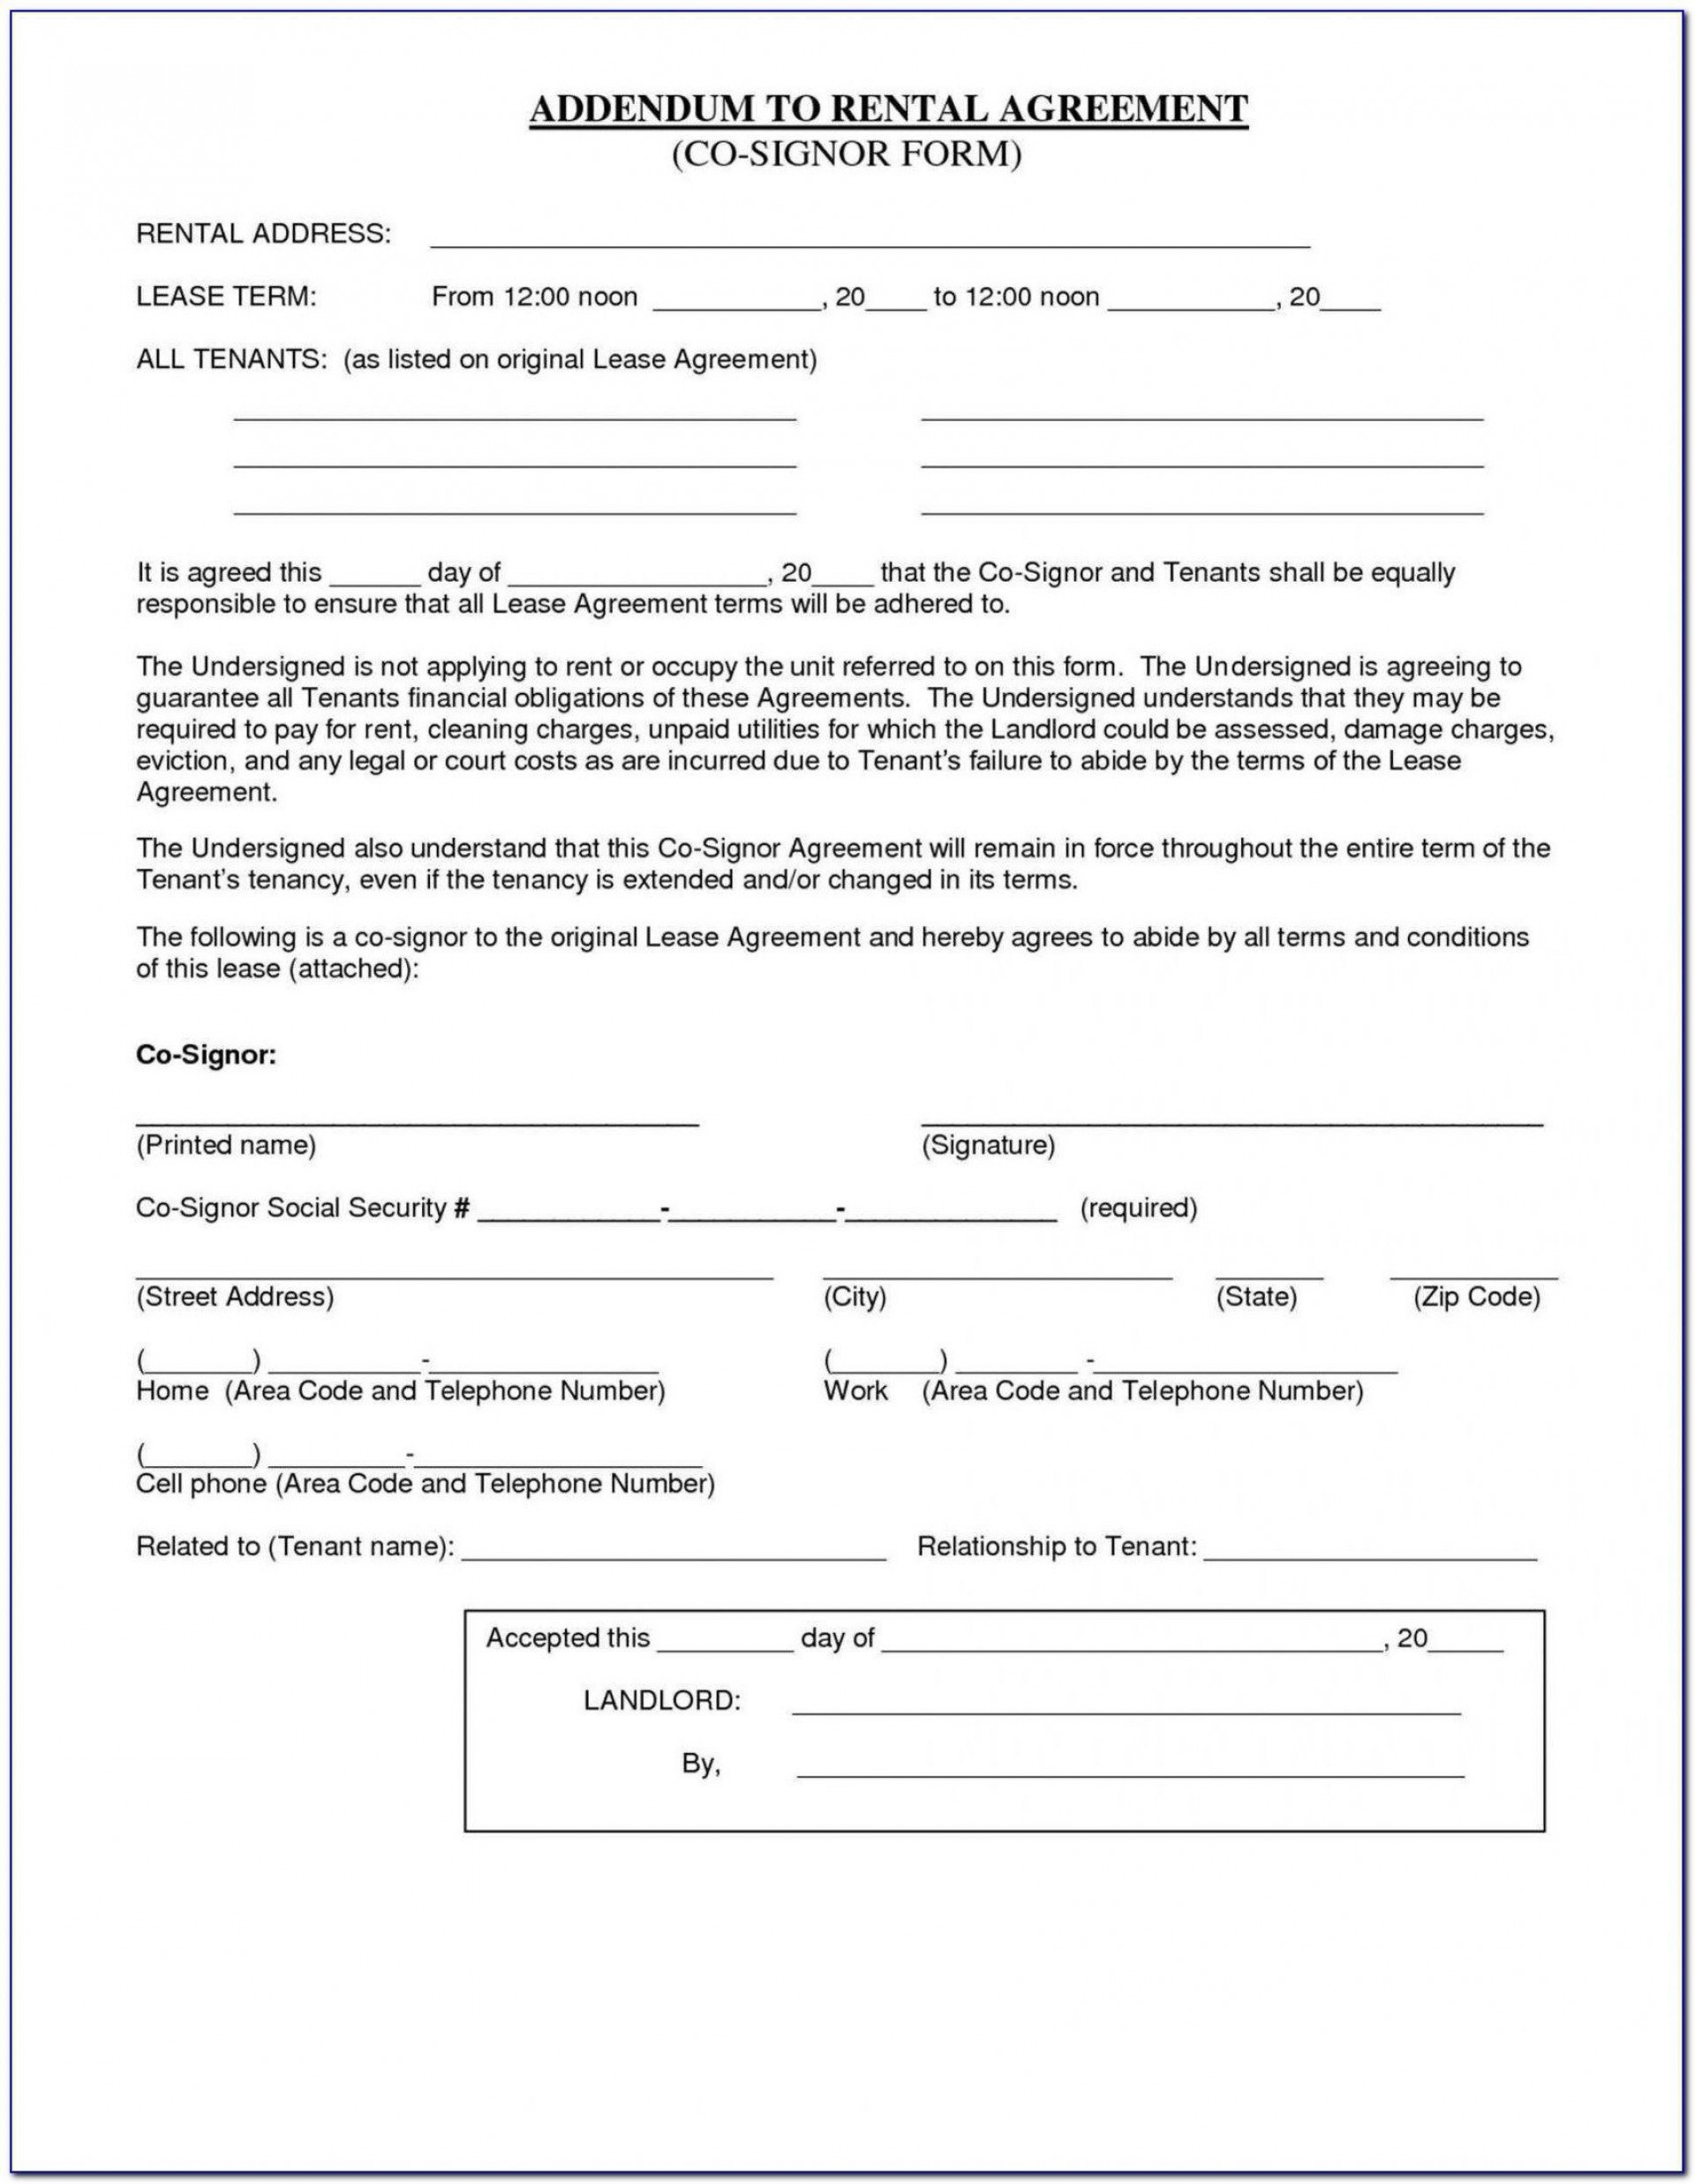 004 Beautiful Lease Agreement Template Word India Image  Rental1920